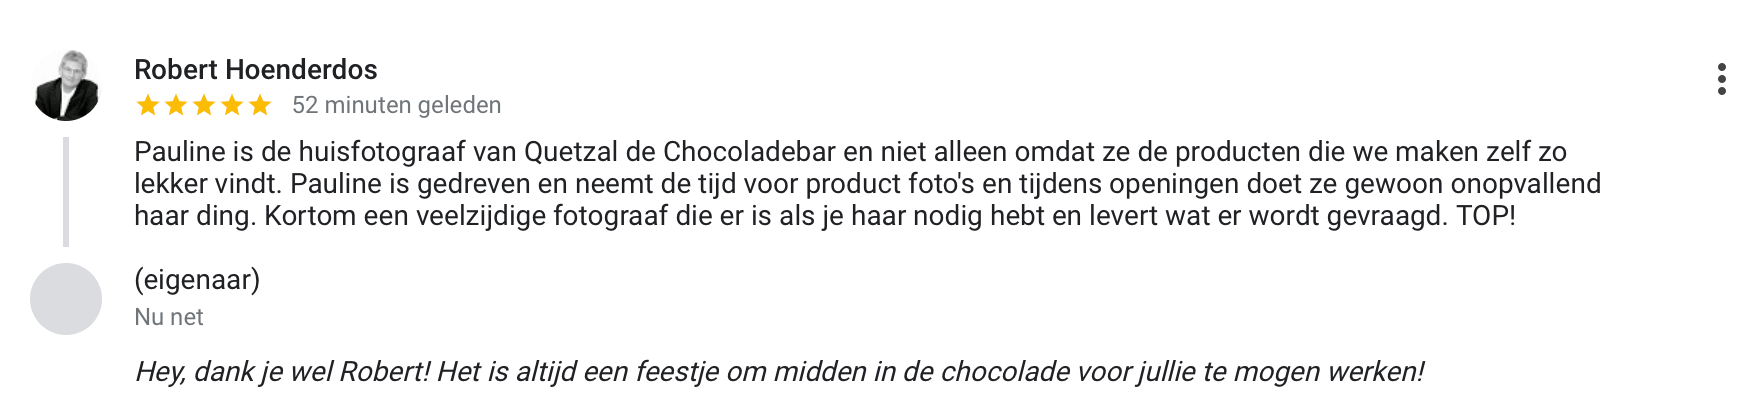 Review Klikklak door Robert